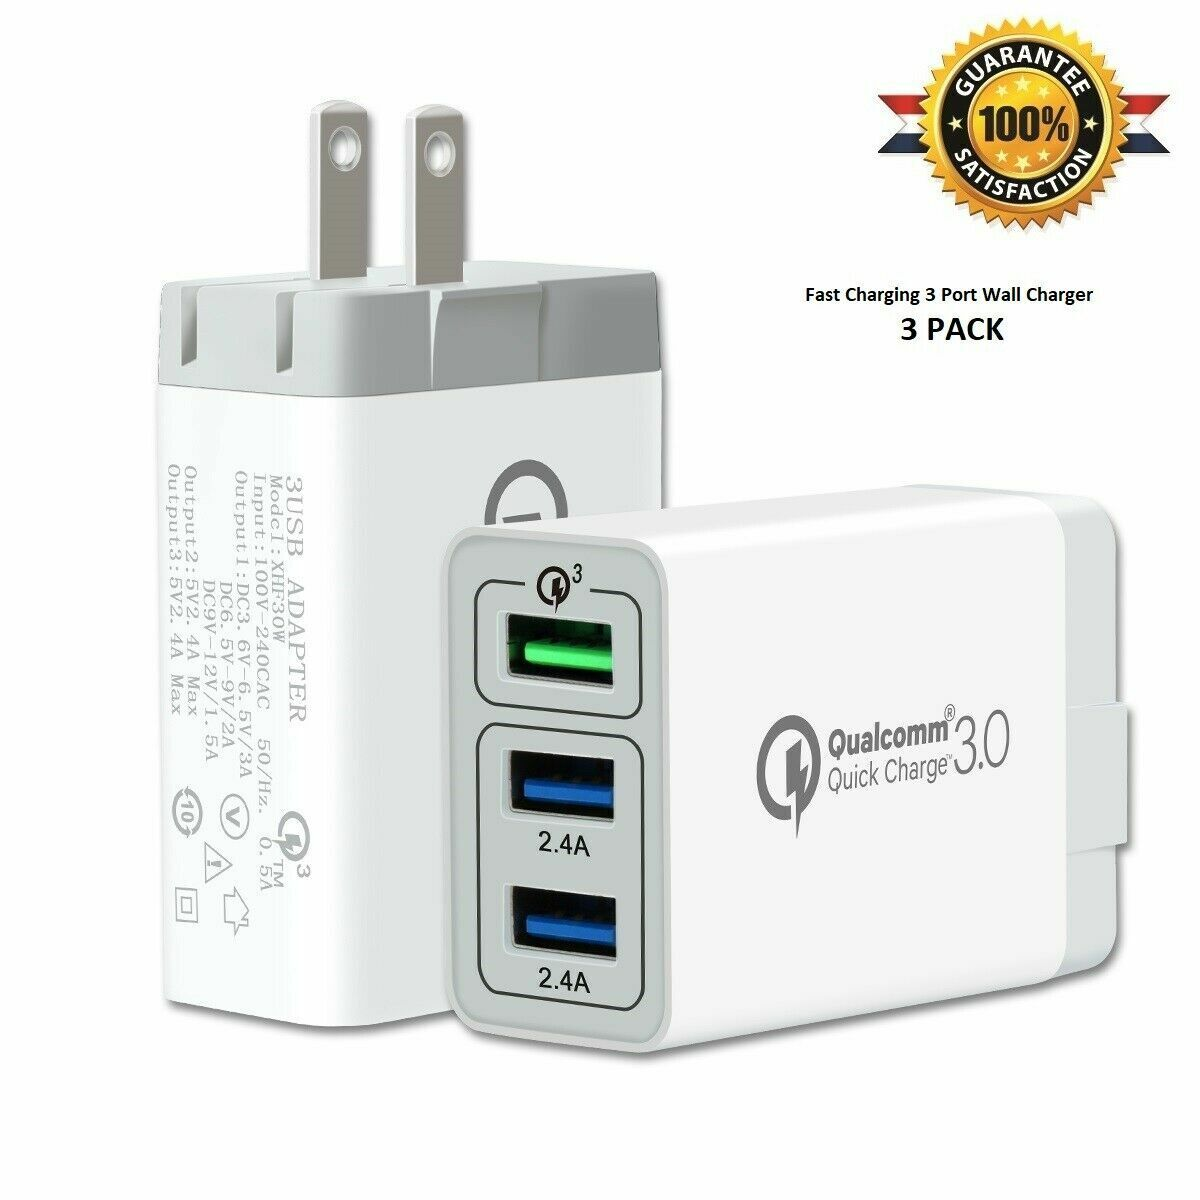 USB Fast 3 Port Wall Charger Plug Power Adapter - iPhone iPa